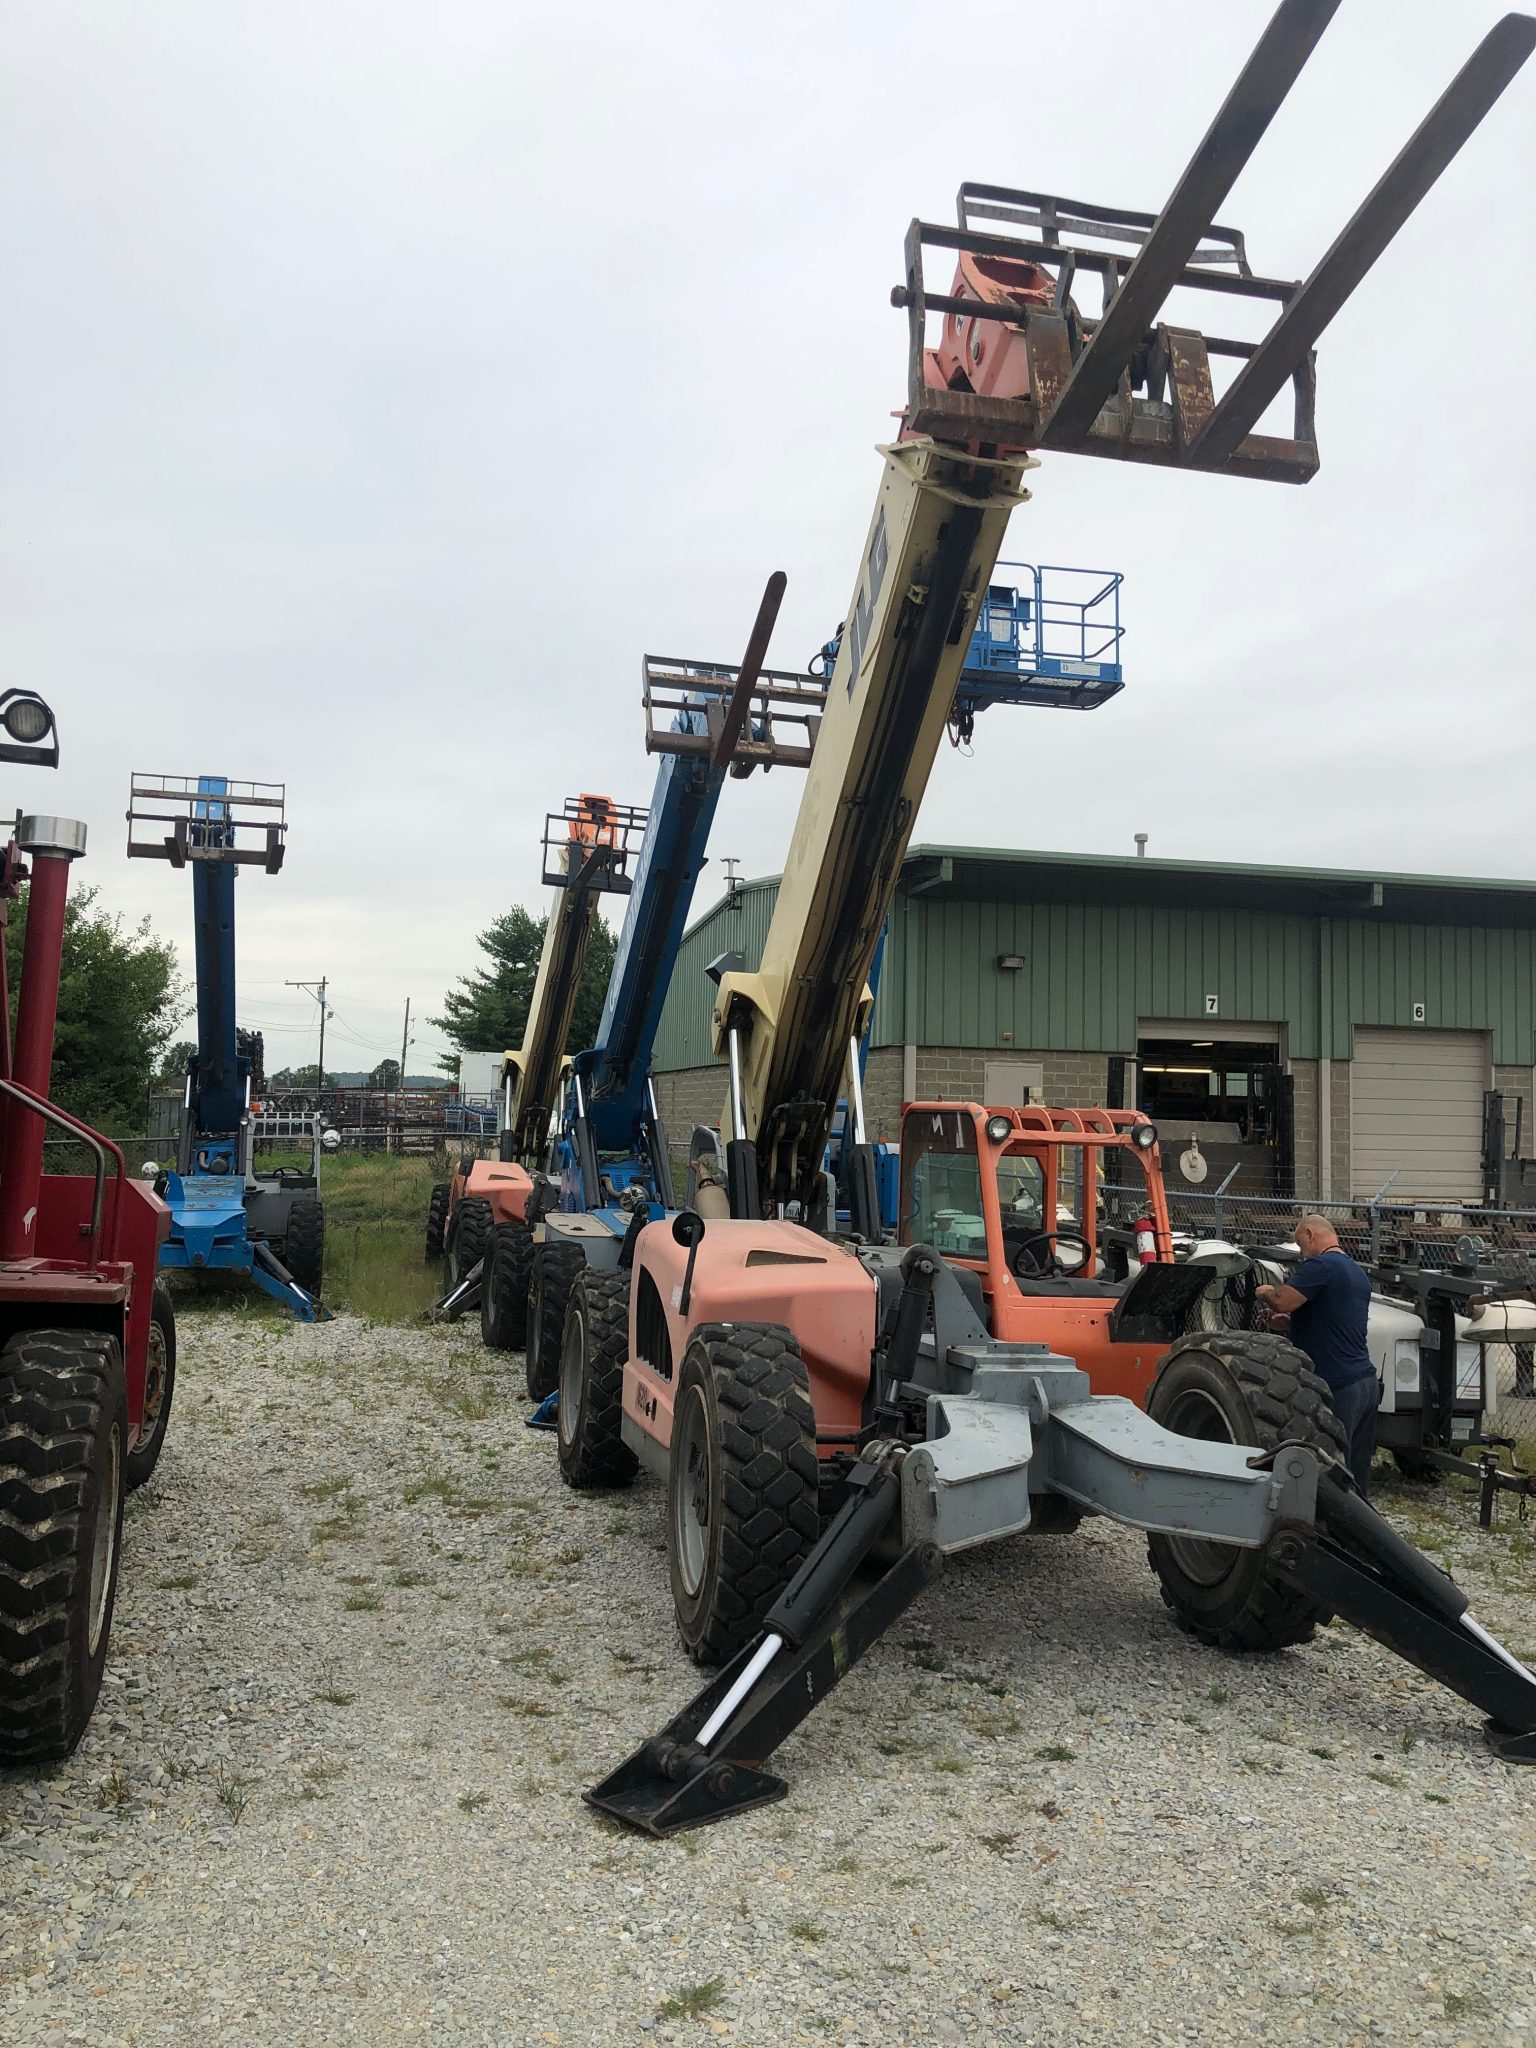 FM Mafco job completion auction JLG lifts